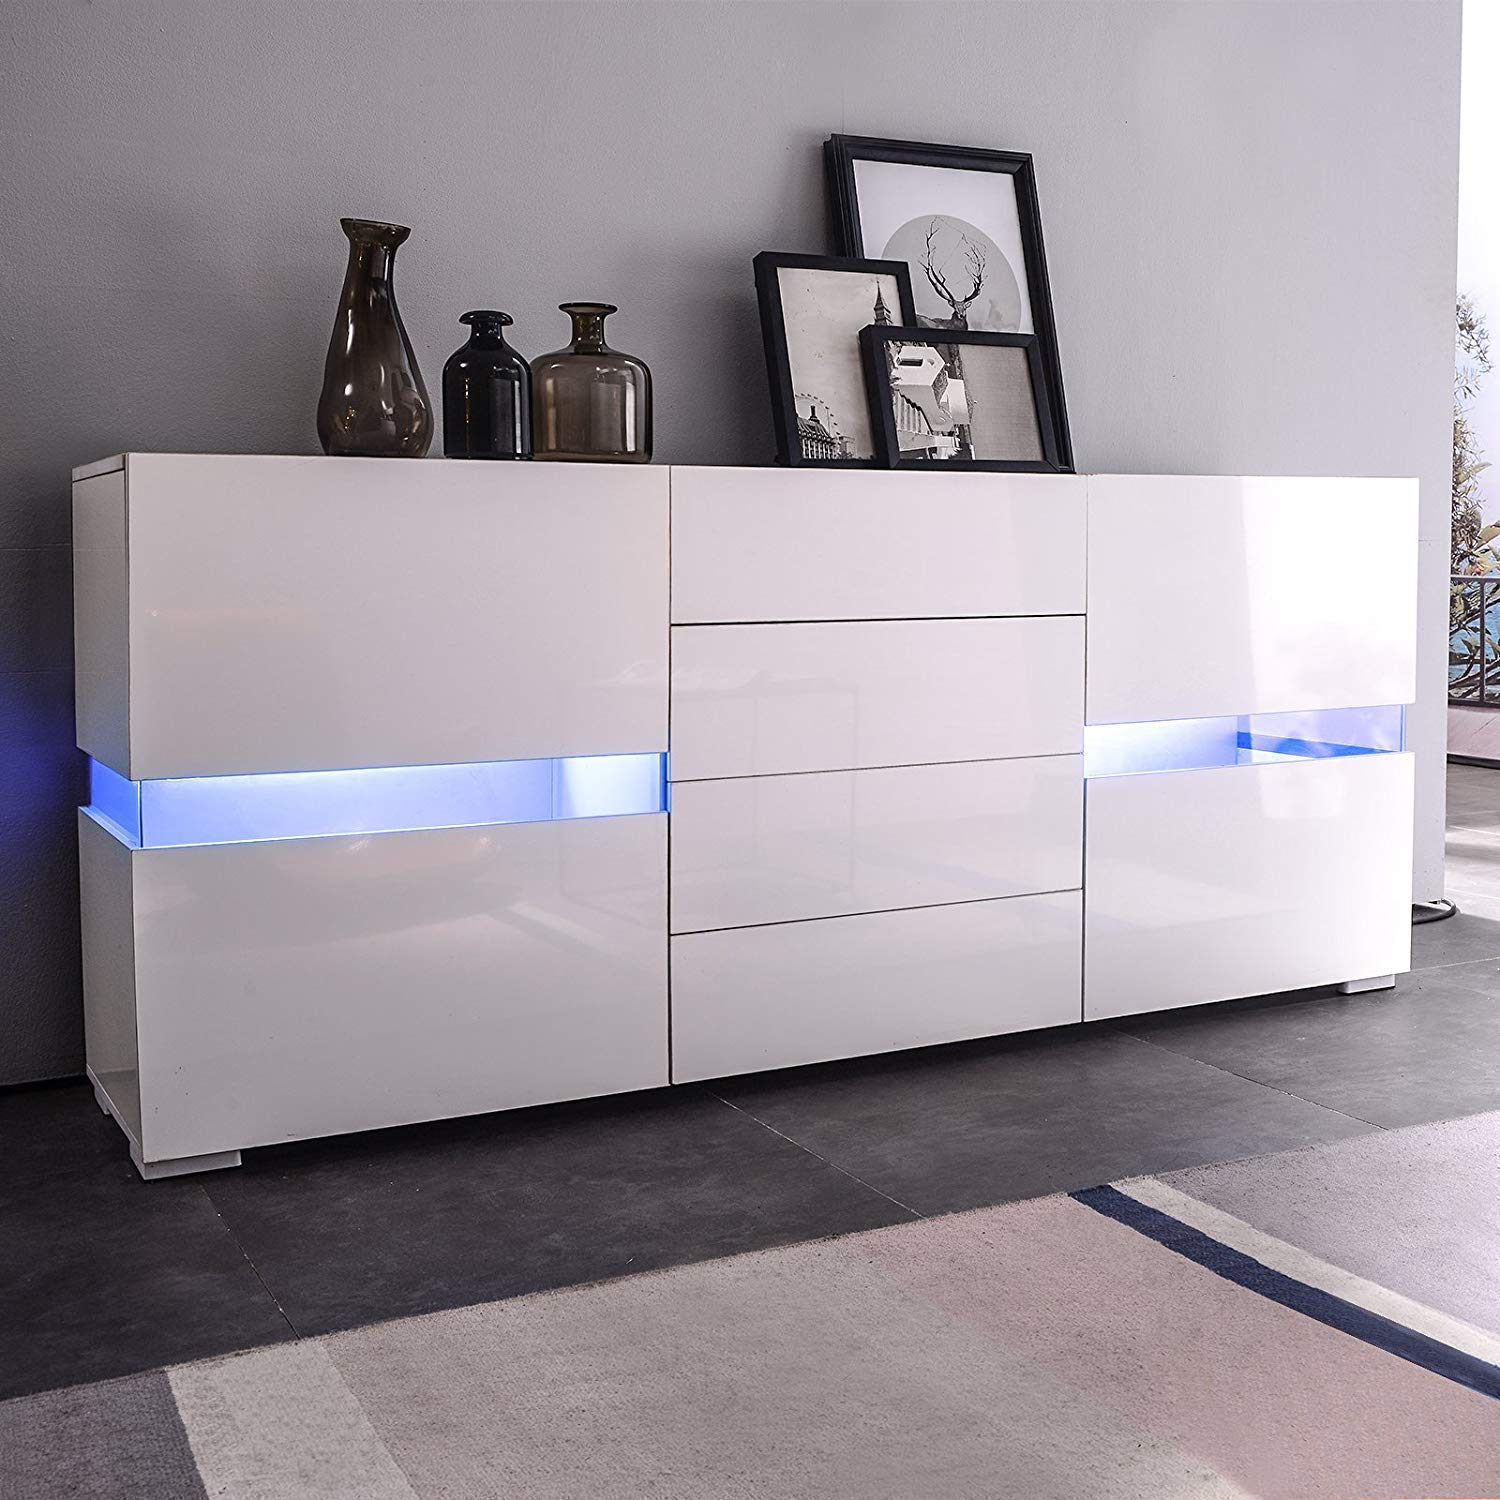 Mecor Sideboard Cabinet Buffet,Kitchen Sideboard and Storage Cabinet/TV Stand High Gloss LED Dining Room Server Console Table 2 Doors & 4 Drawers,White